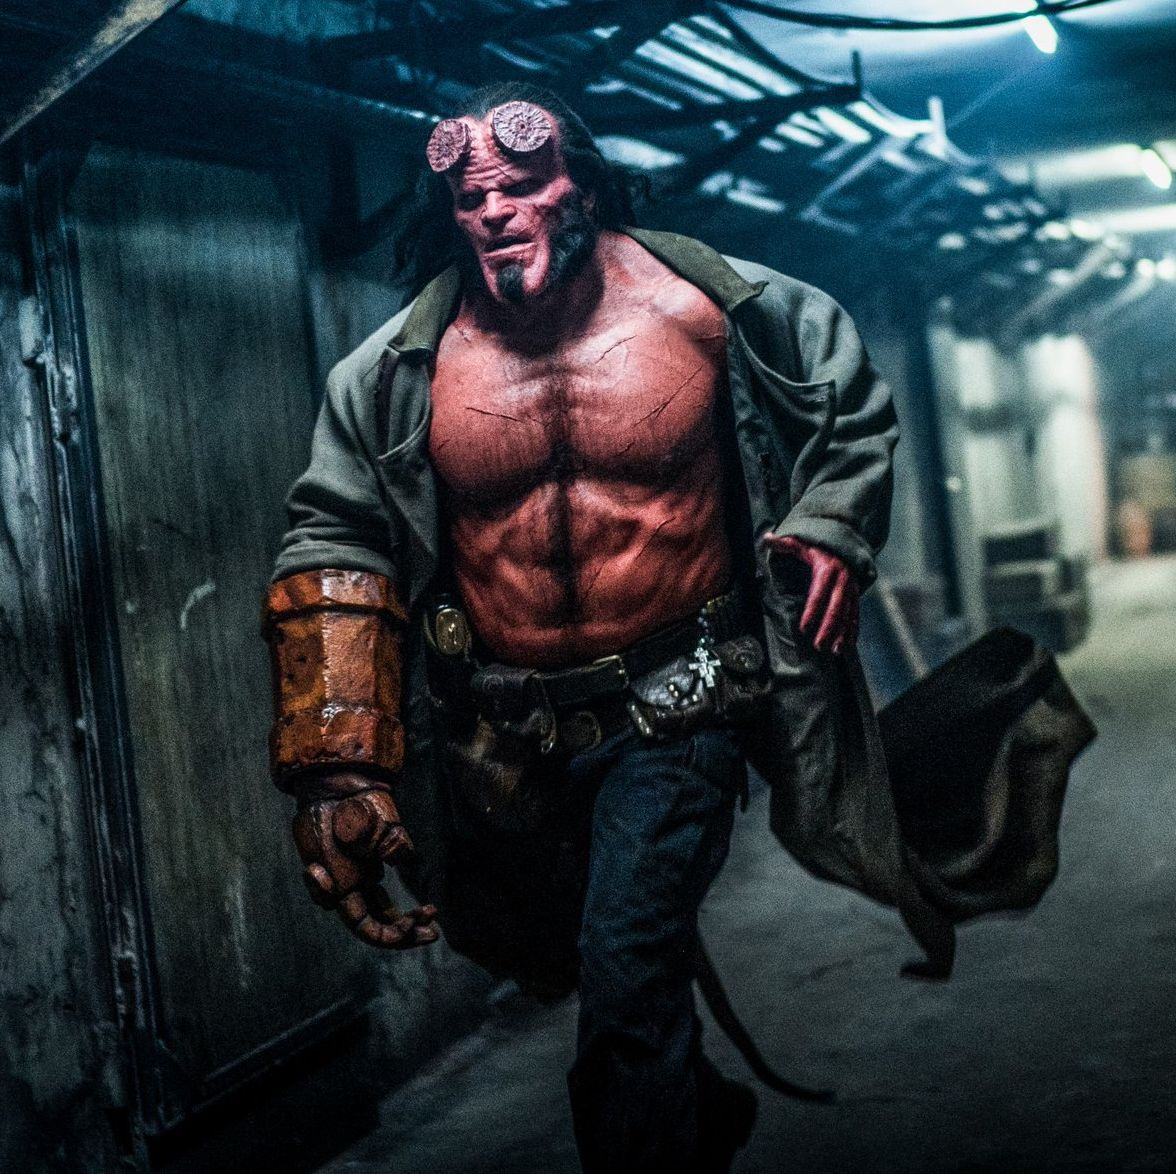 Hellboy reboot has ended its US box office run with a disastrous amount